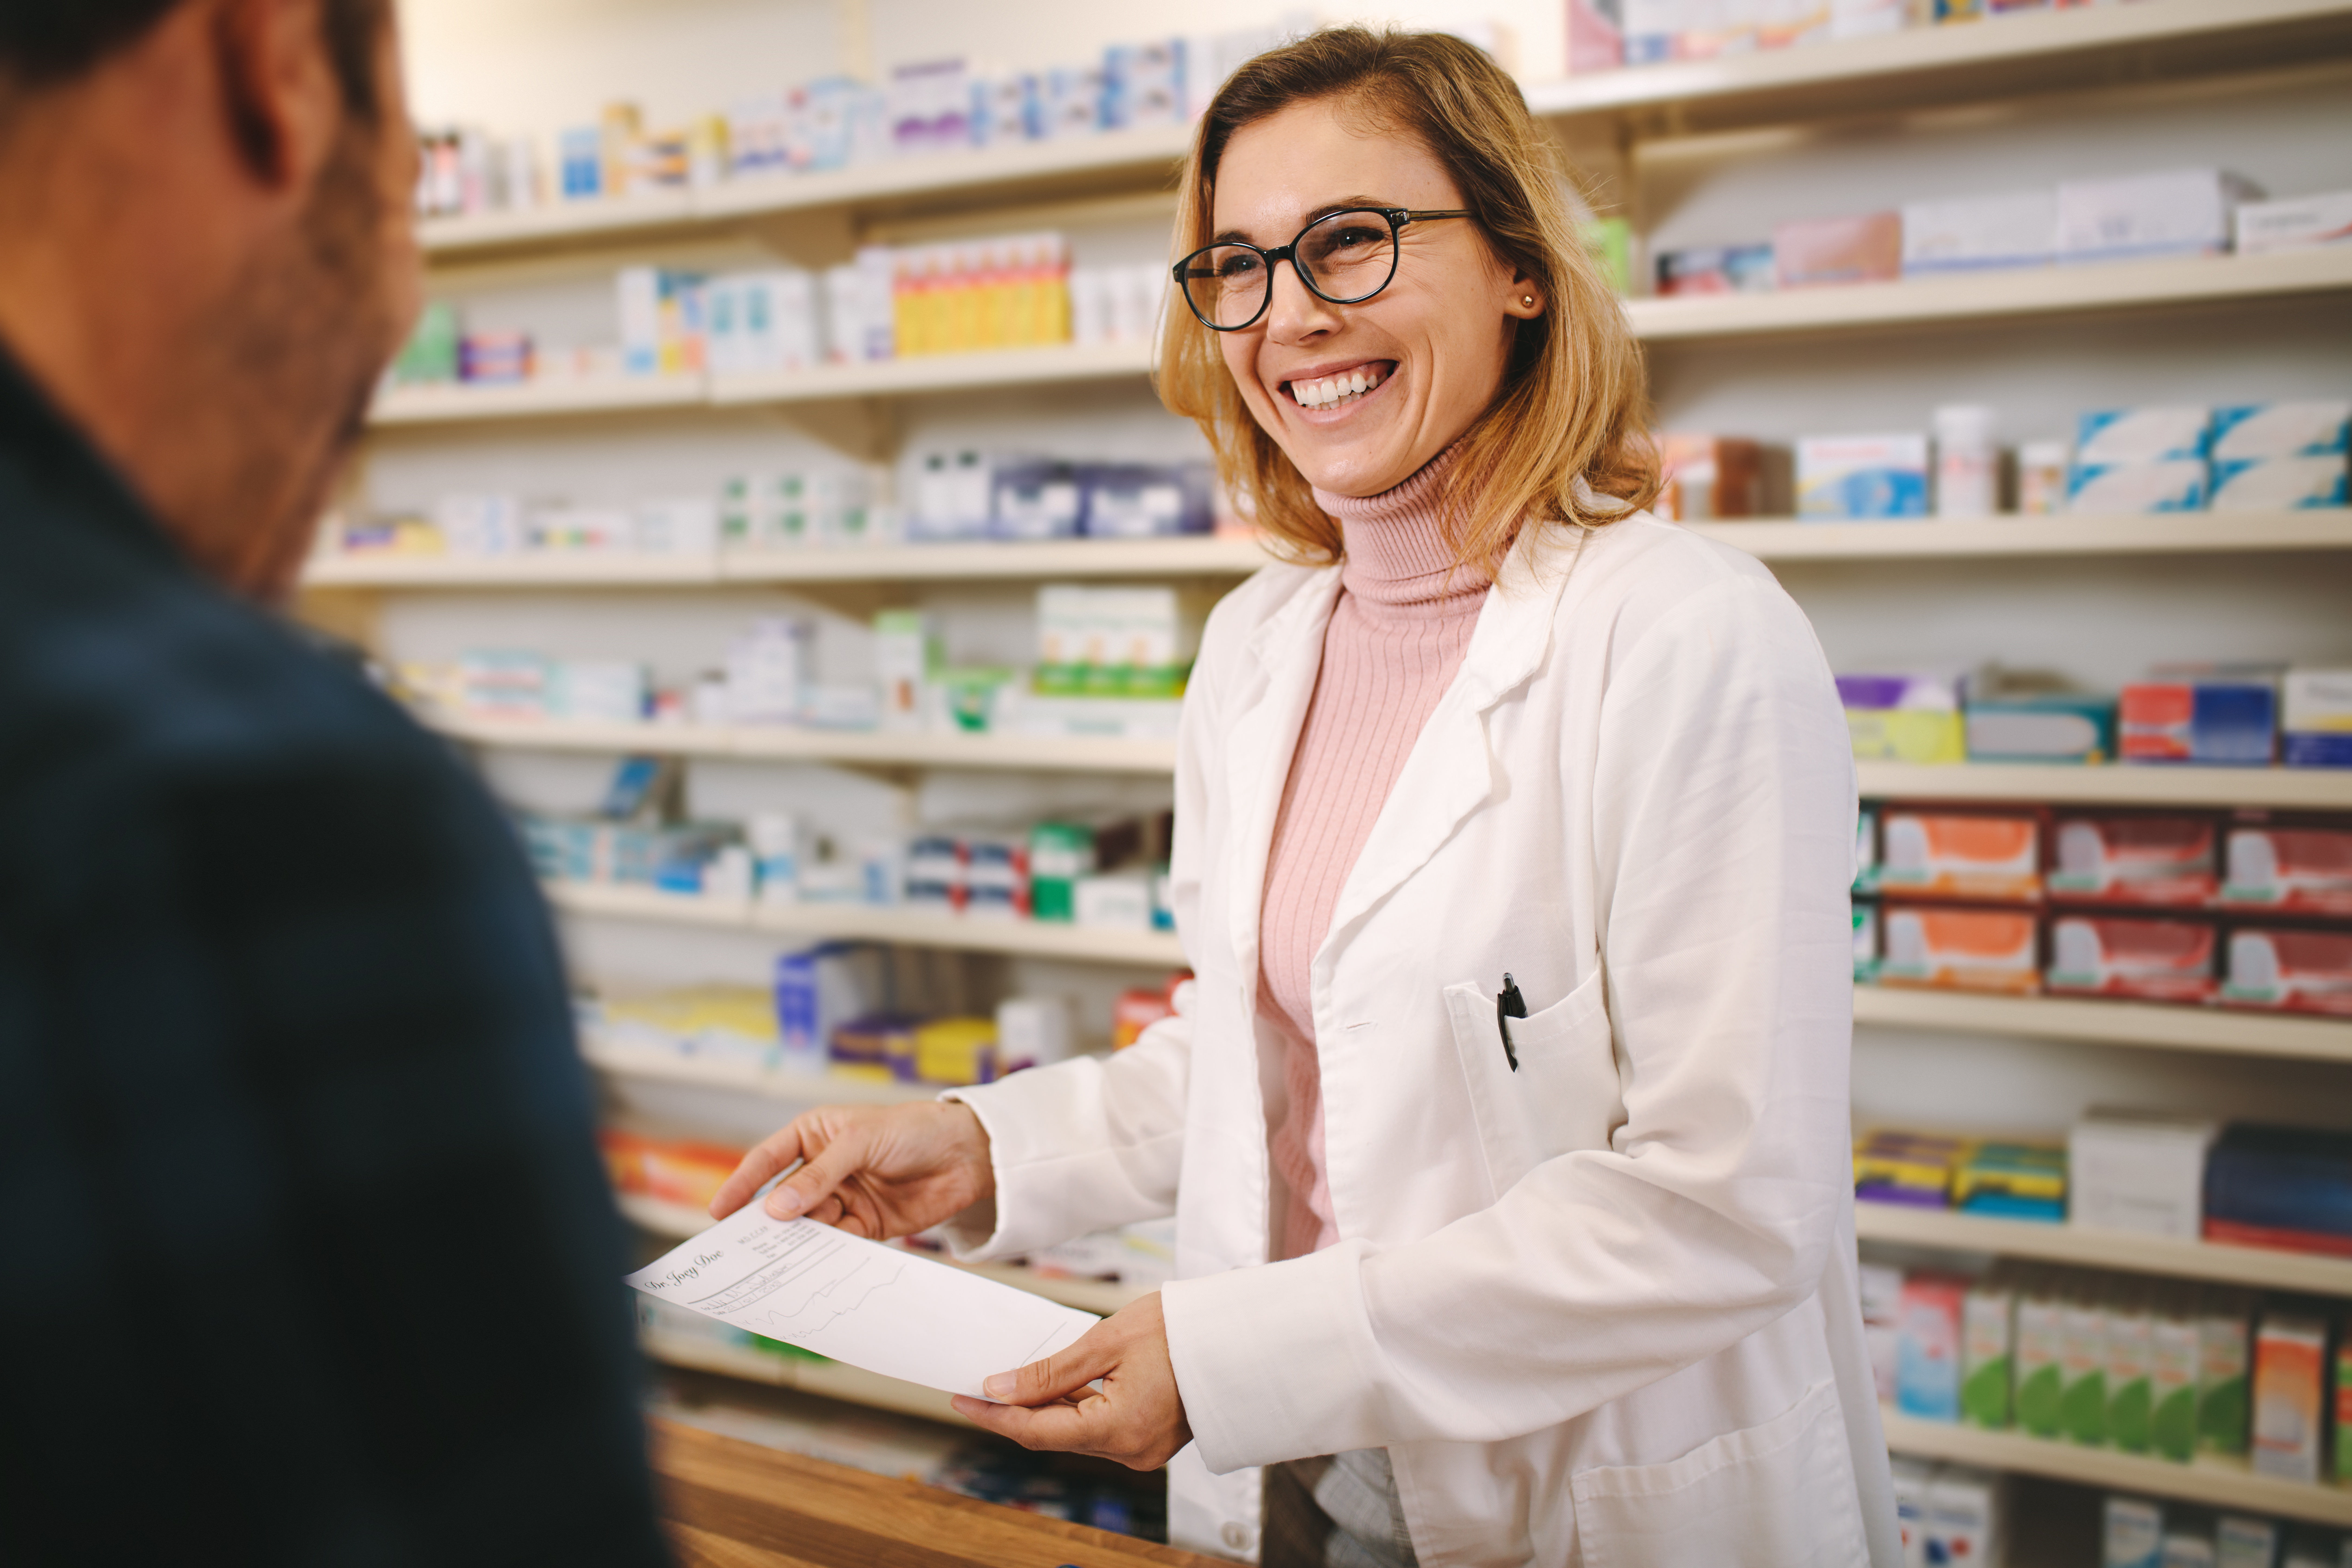 Pharmacist smiling at patient who is receiving a prescription